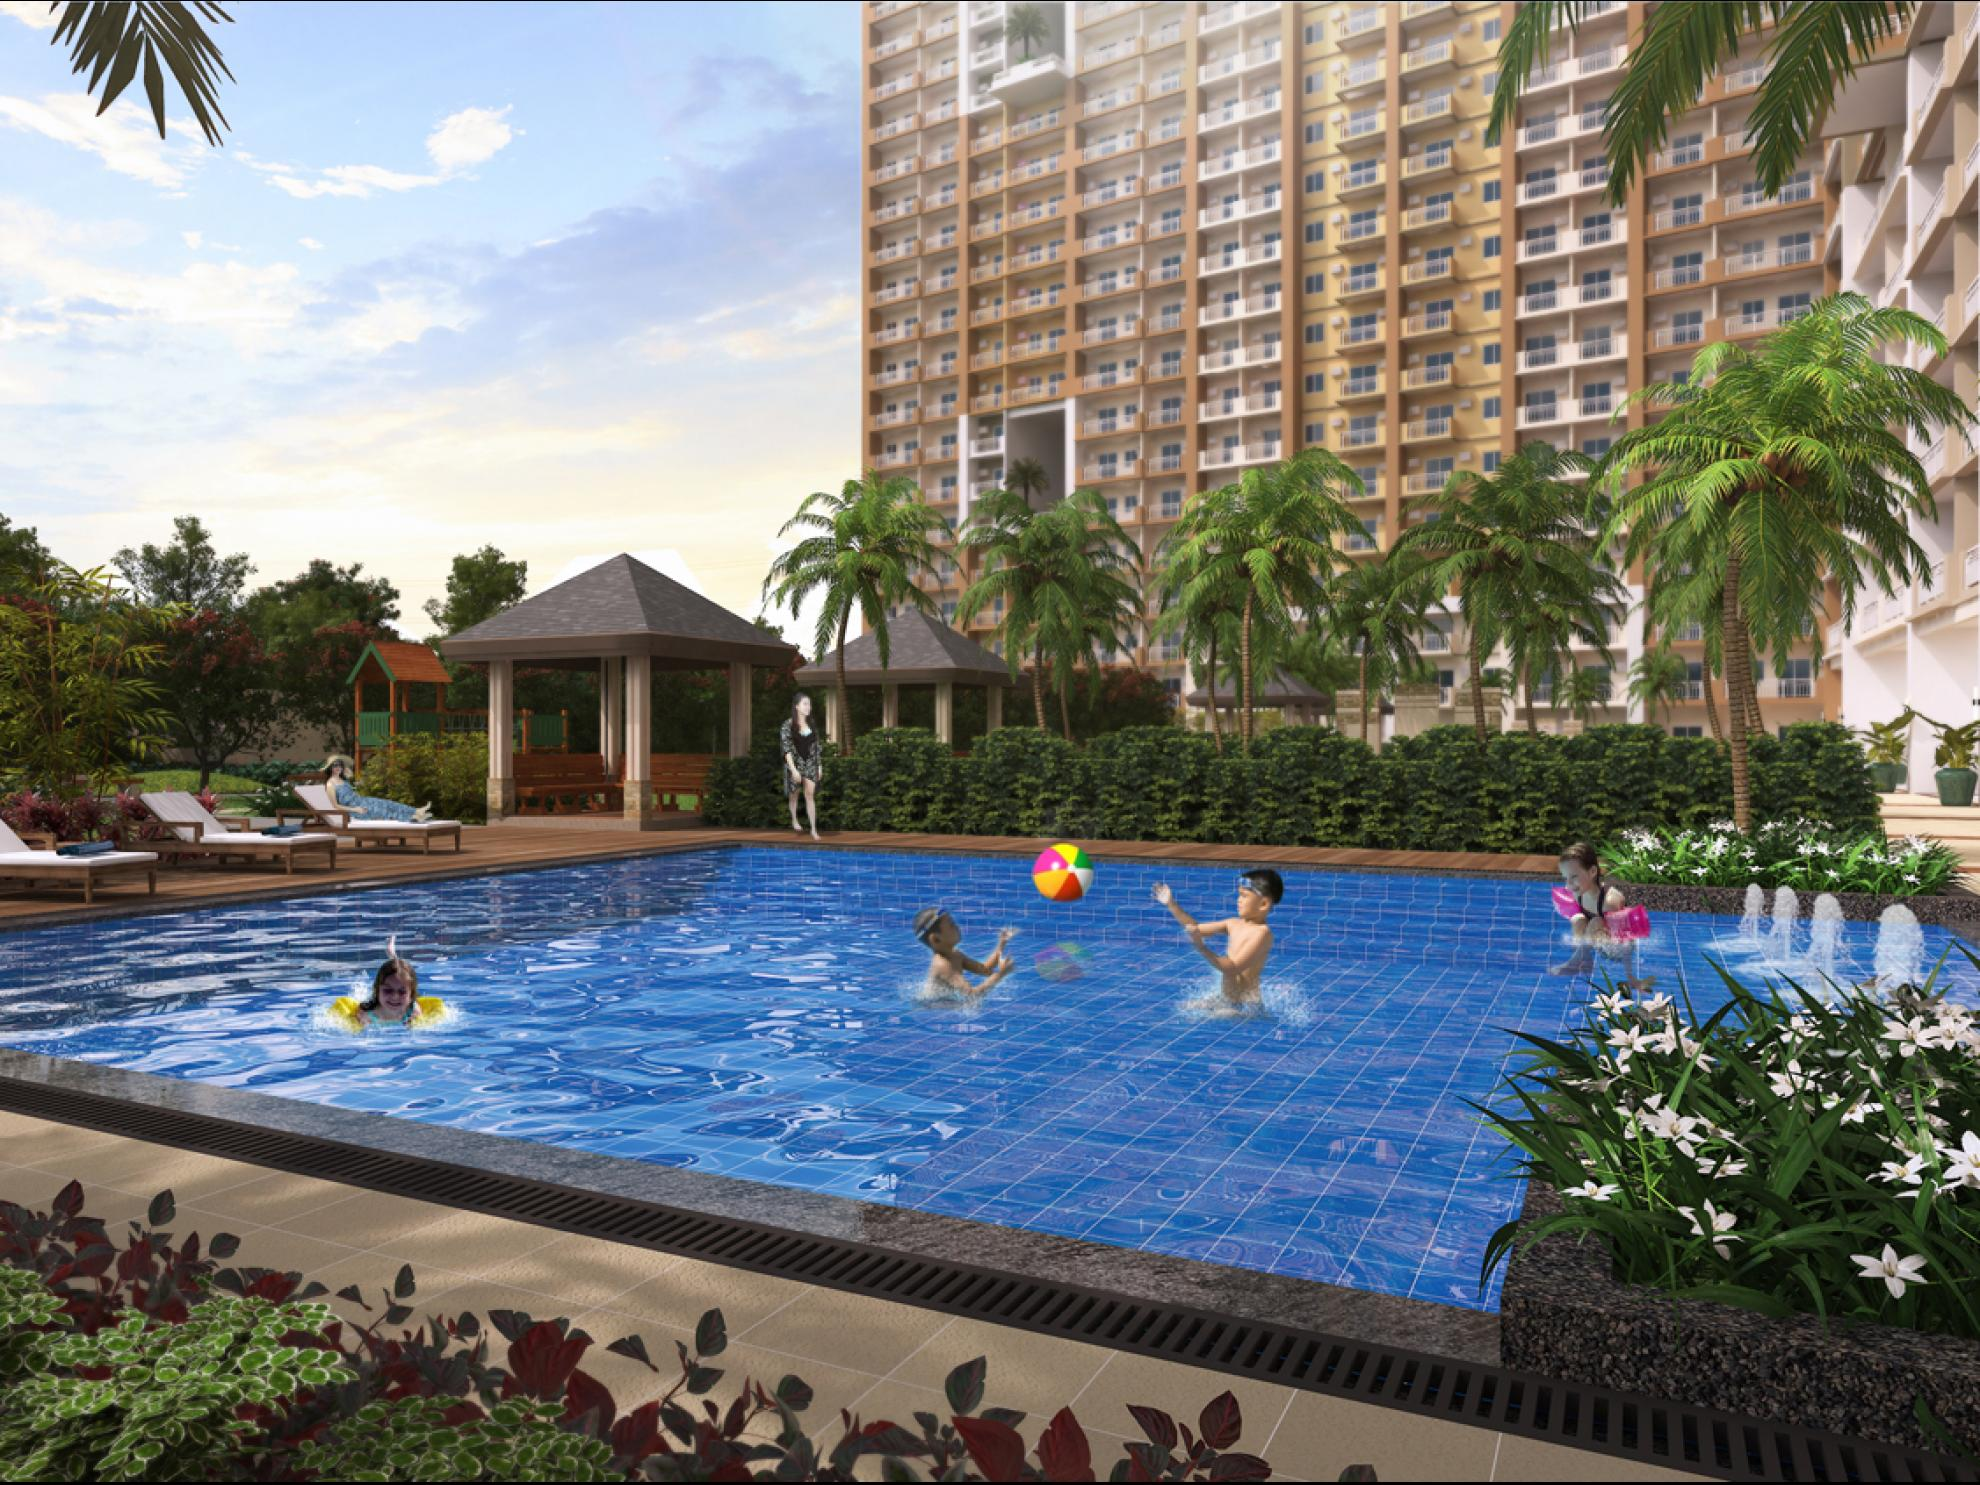 DMCI Homes launches building 2 of hot-selling Infina Towers